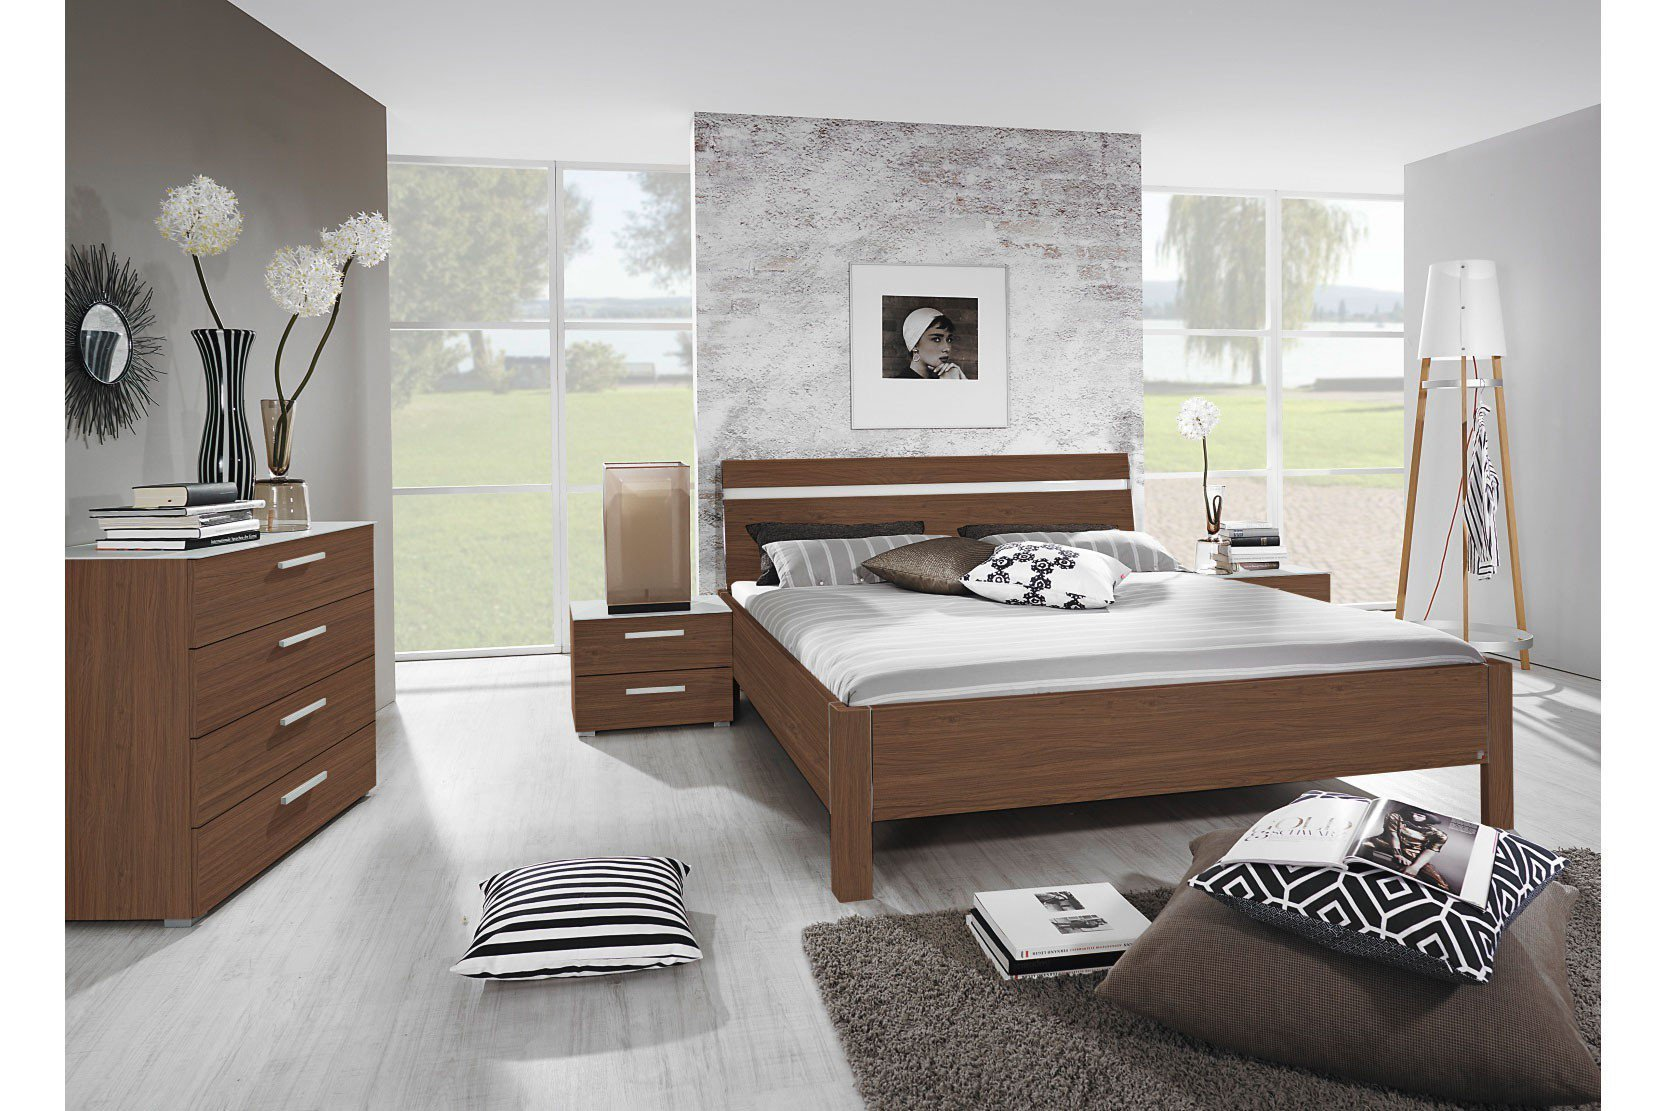 rauch kommode nussbaum m bel ideen und home design. Black Bedroom Furniture Sets. Home Design Ideas